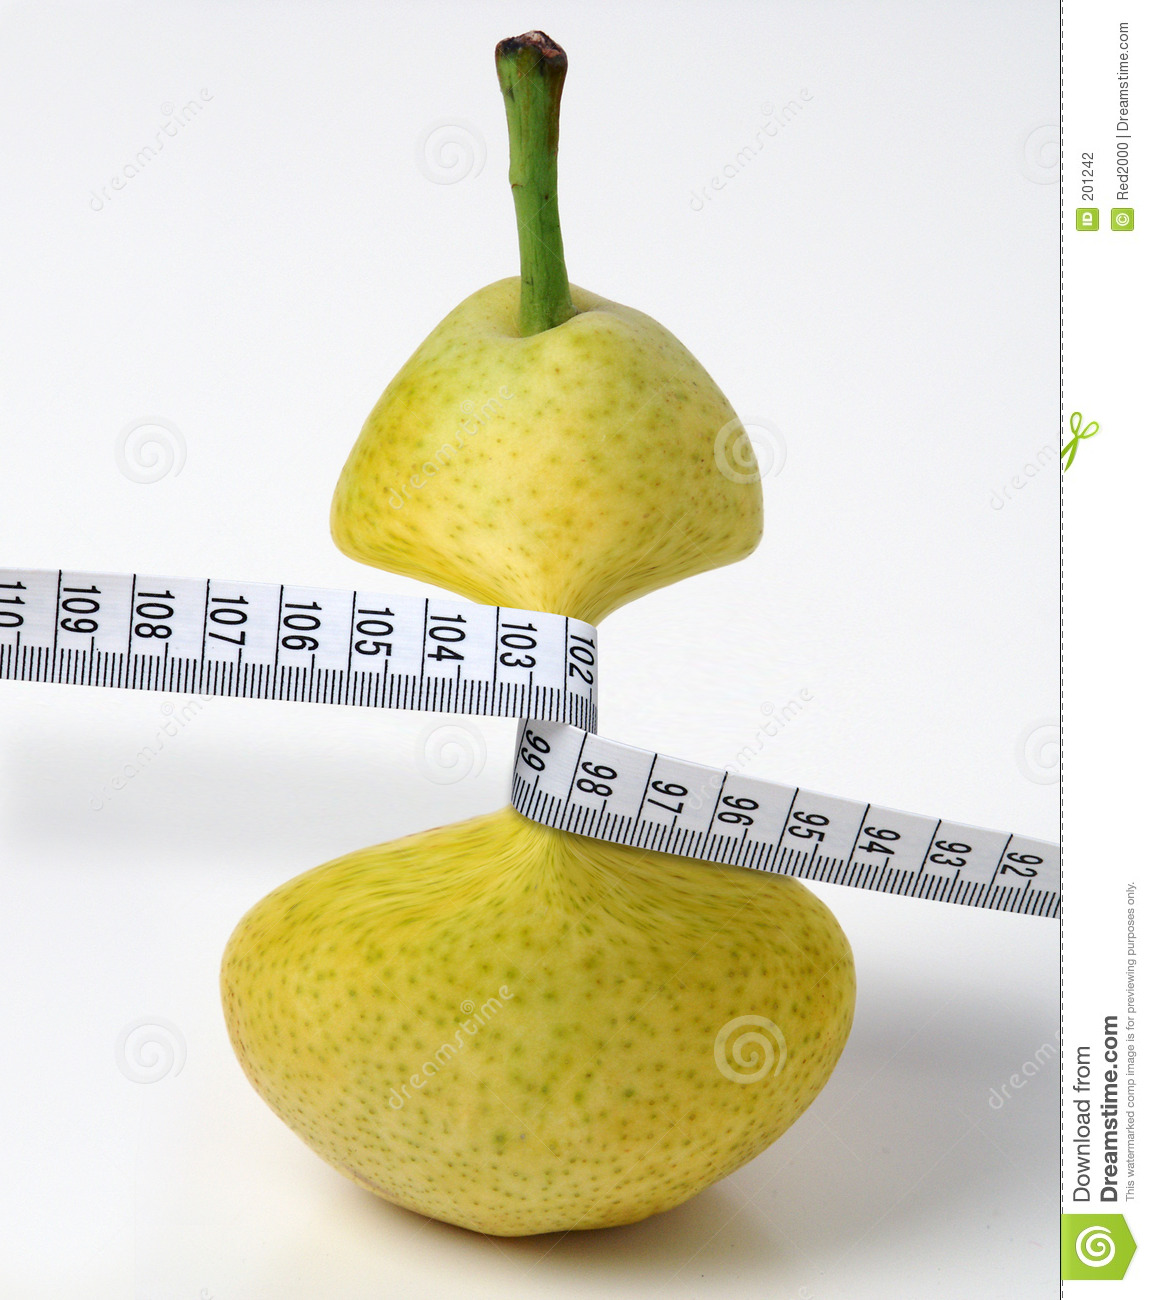 Pear anorectic